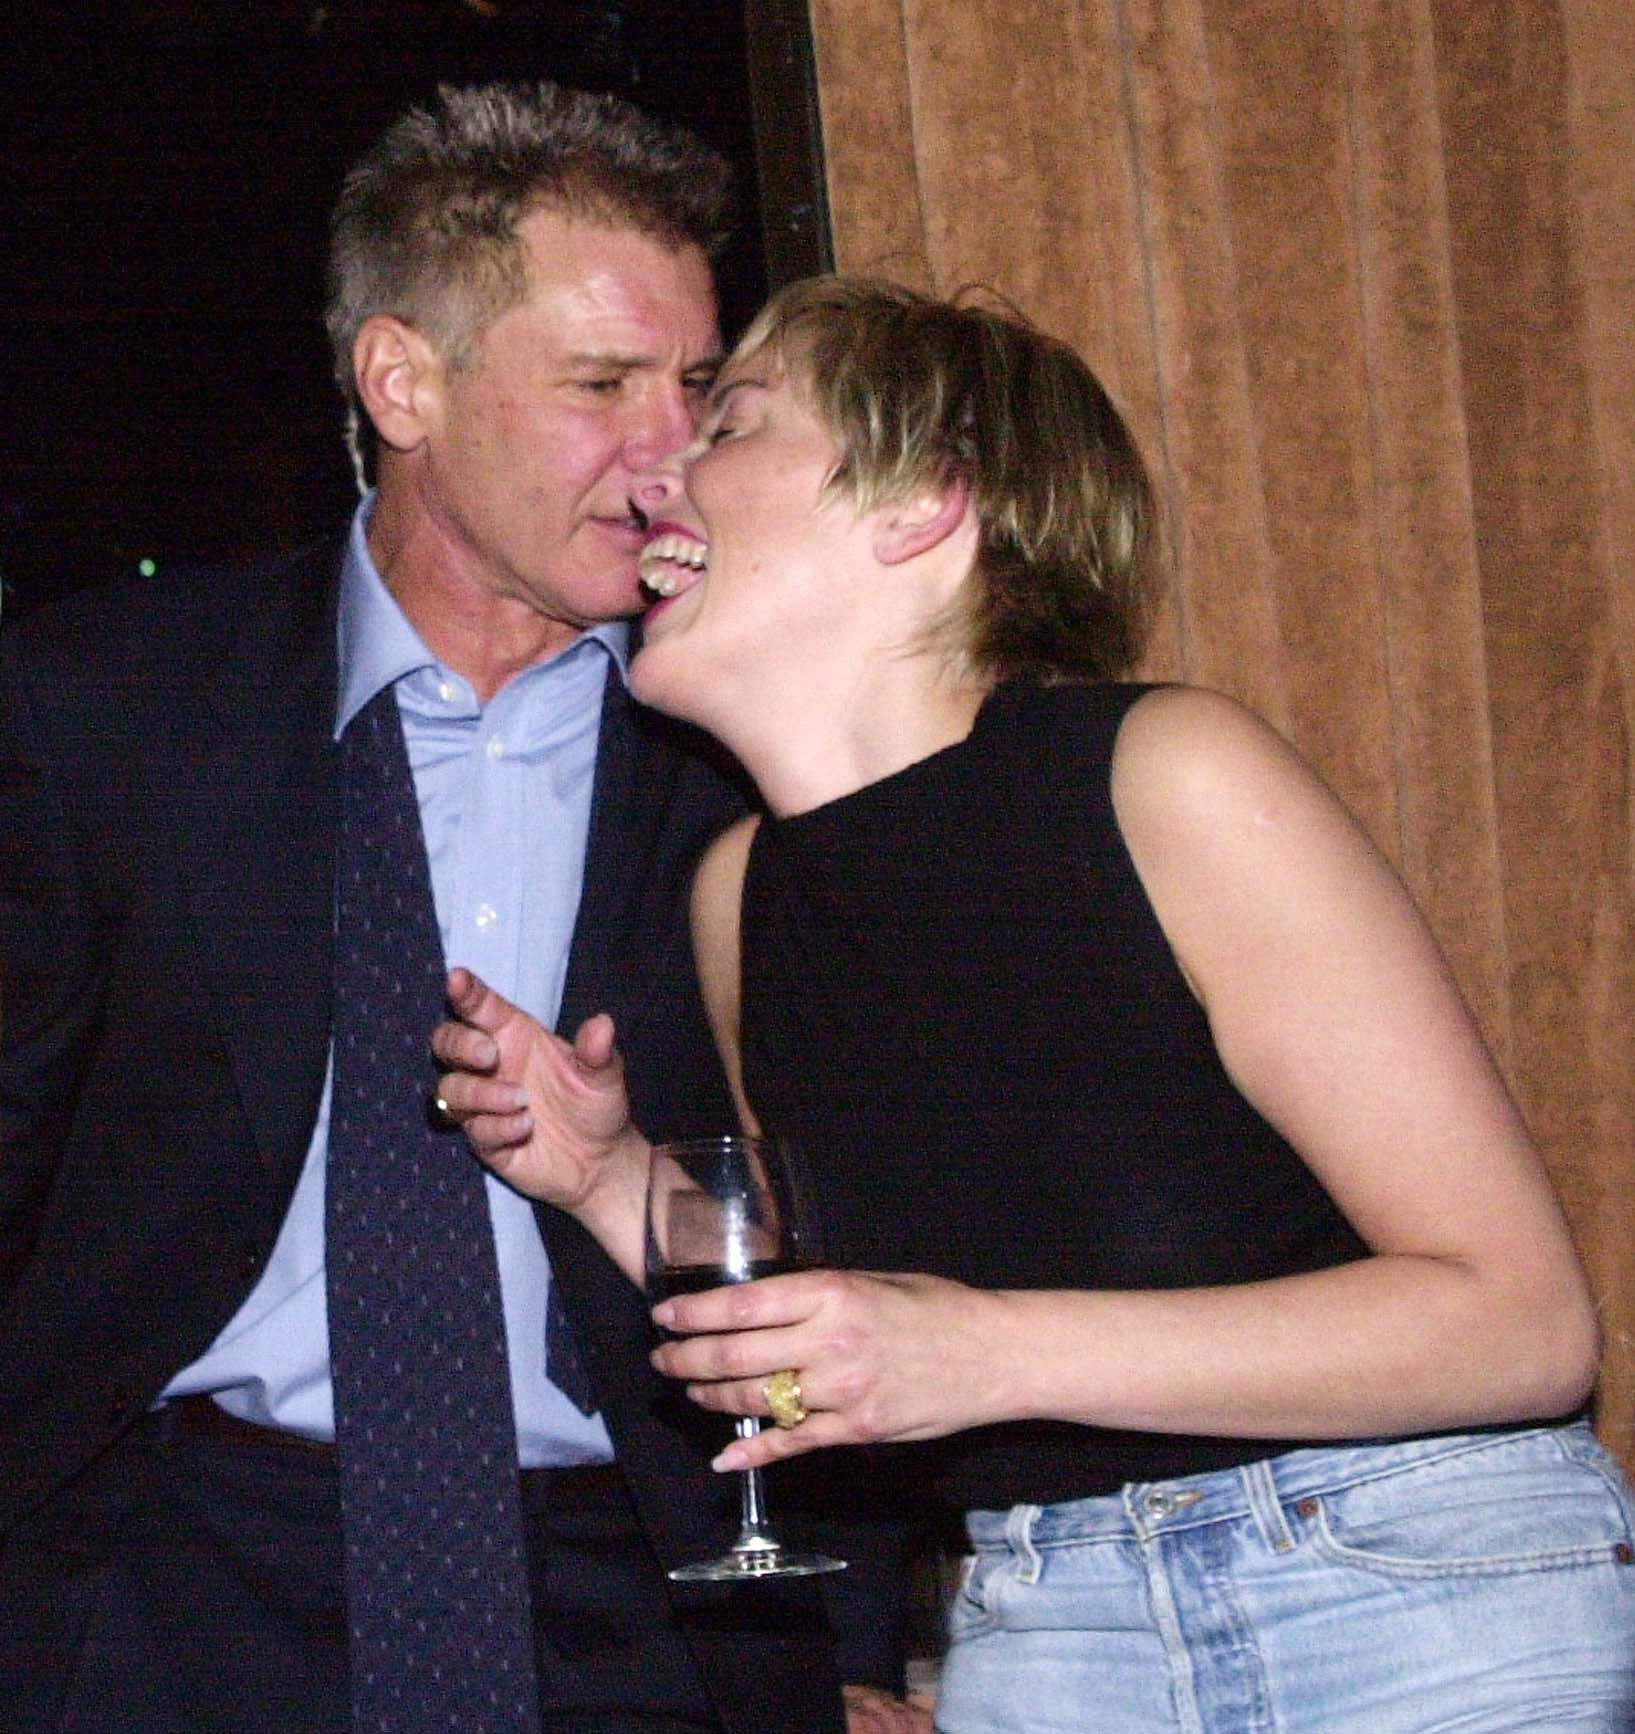 """Actor Harrison Ford and actress Sharon Stone share a light moment at GQ Magazine's party 16 February 2000 to unveil its March 2000 issue, """"Leading Men of Hollywood,"""" featuring Ford on the cover.    (ELECTRONIC IMAGE) / AFP PHOTO / JIM RUYMEN"""